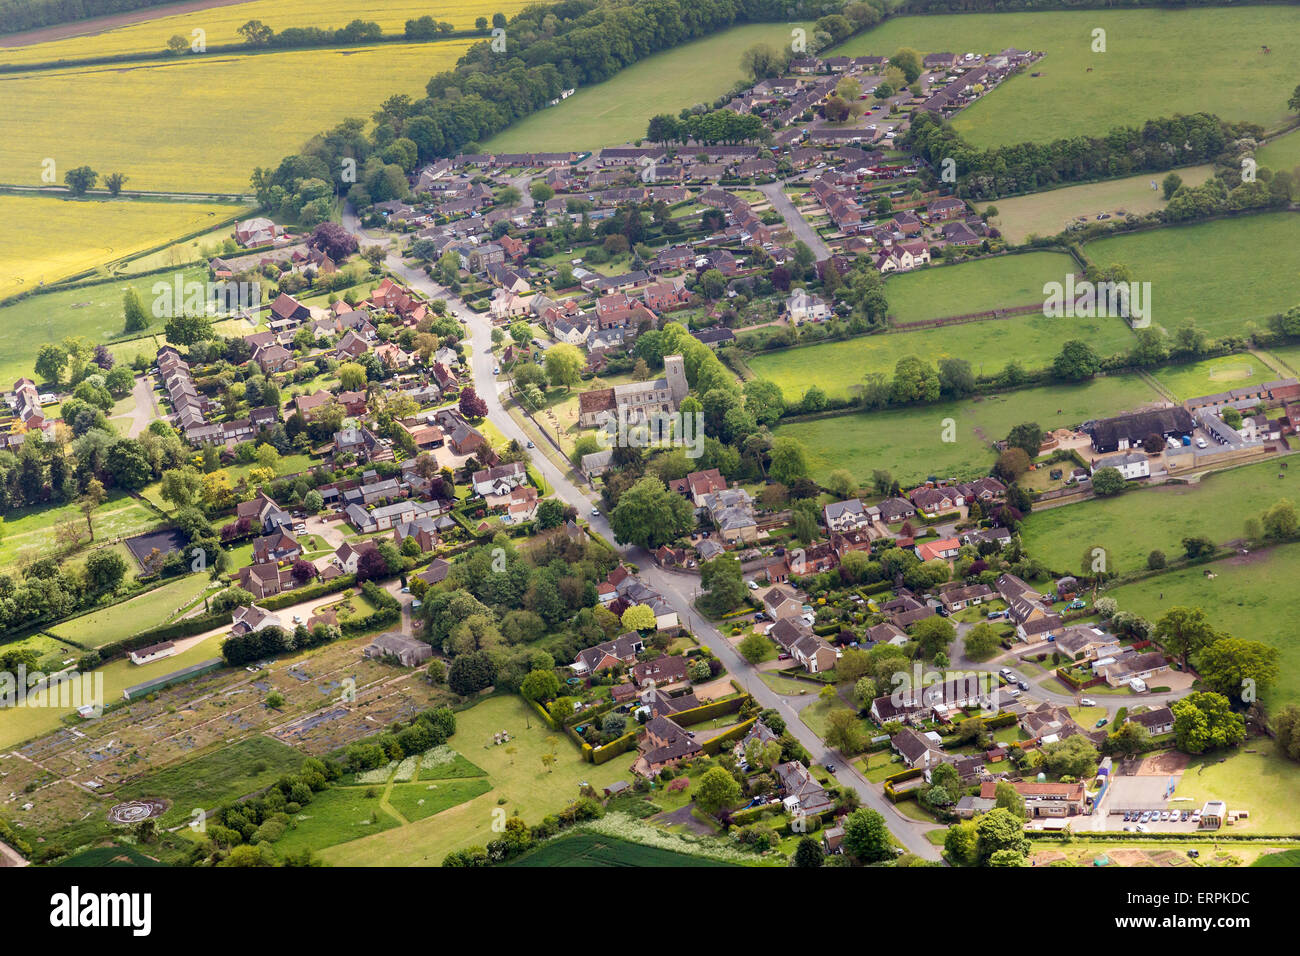 aerial photo of Gazeley village in Suffolk, UK Stock Photo